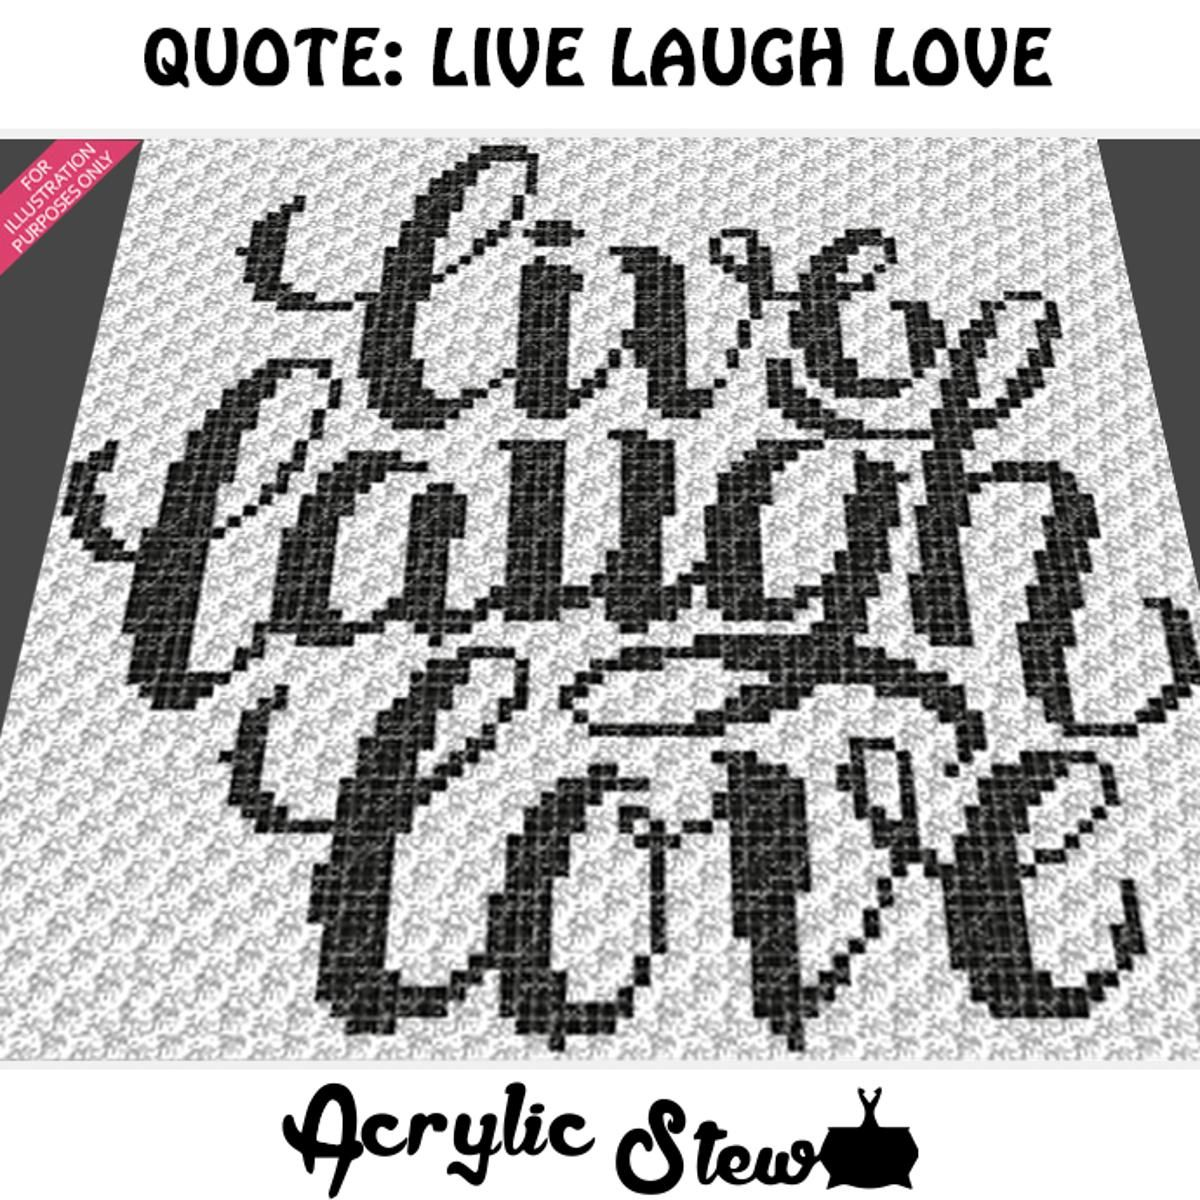 Live Laugh Love Quote (sc tss c2c cross stitch)